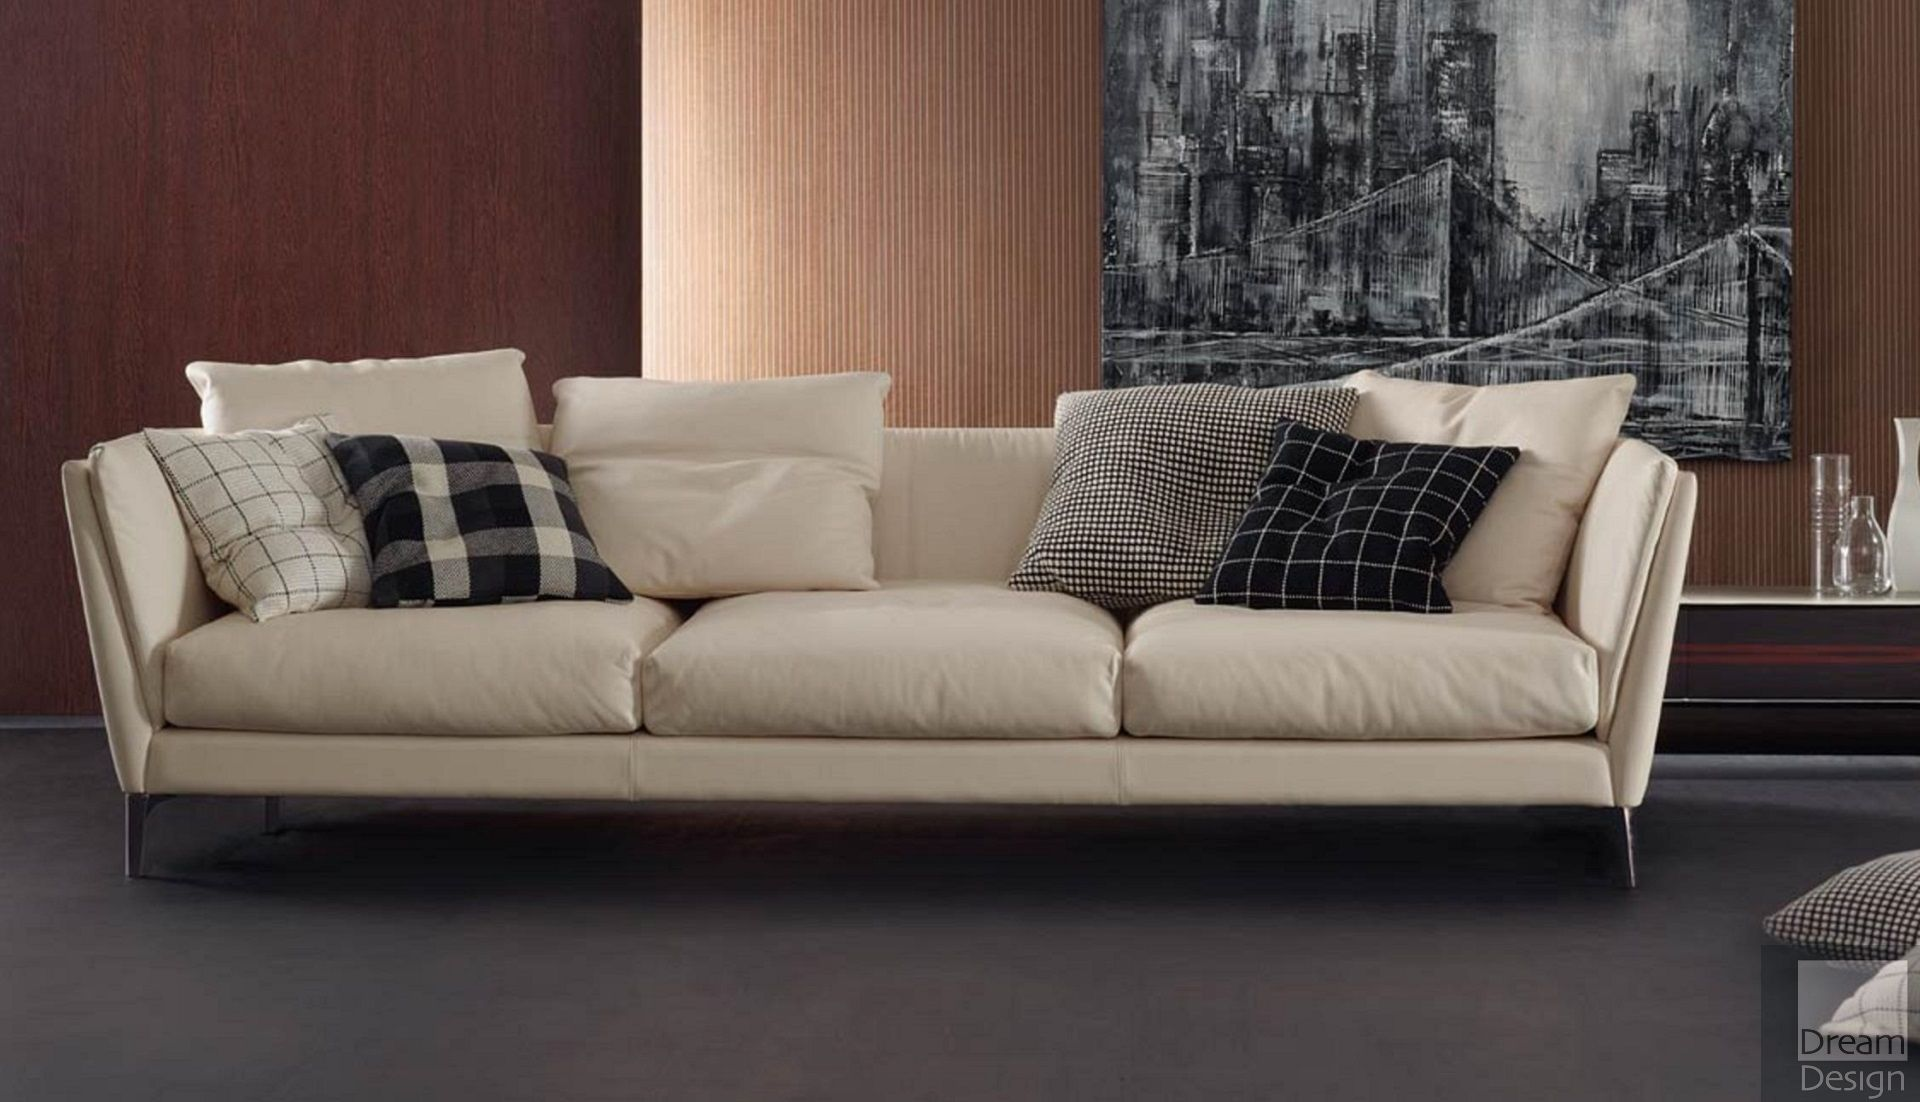 Poltrona Frau Bretagne Three Seater Sofa - Everything But Ordinary